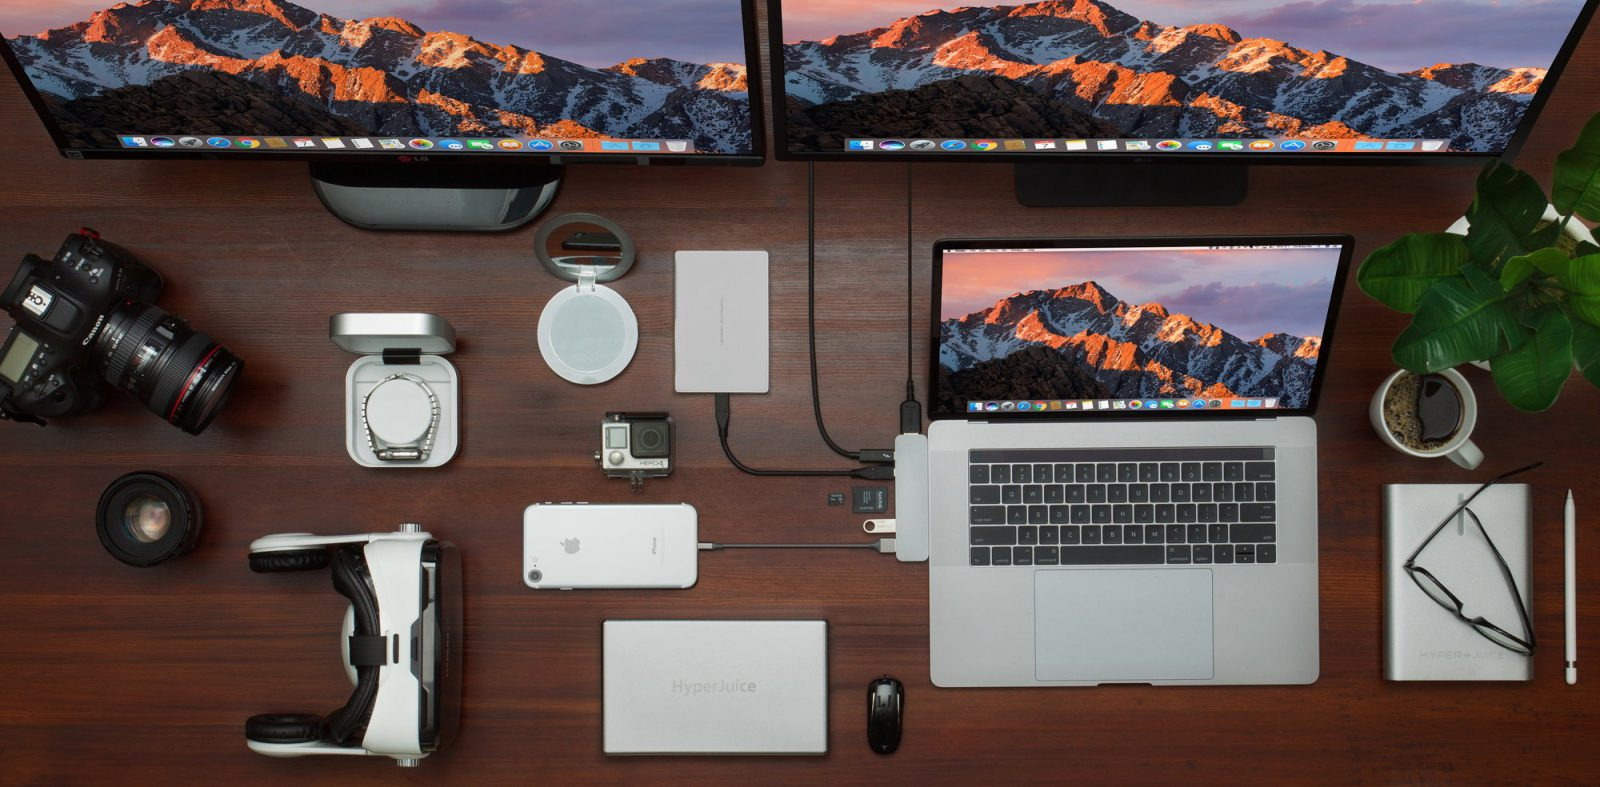 9to5Rewards: Win HyperDrive USB-C hubs for MacBook/Pro + 20% off deal 9to5rewards-win-hyperdrive-usb-c-hubs-for-macbook-pro-20-off-deal